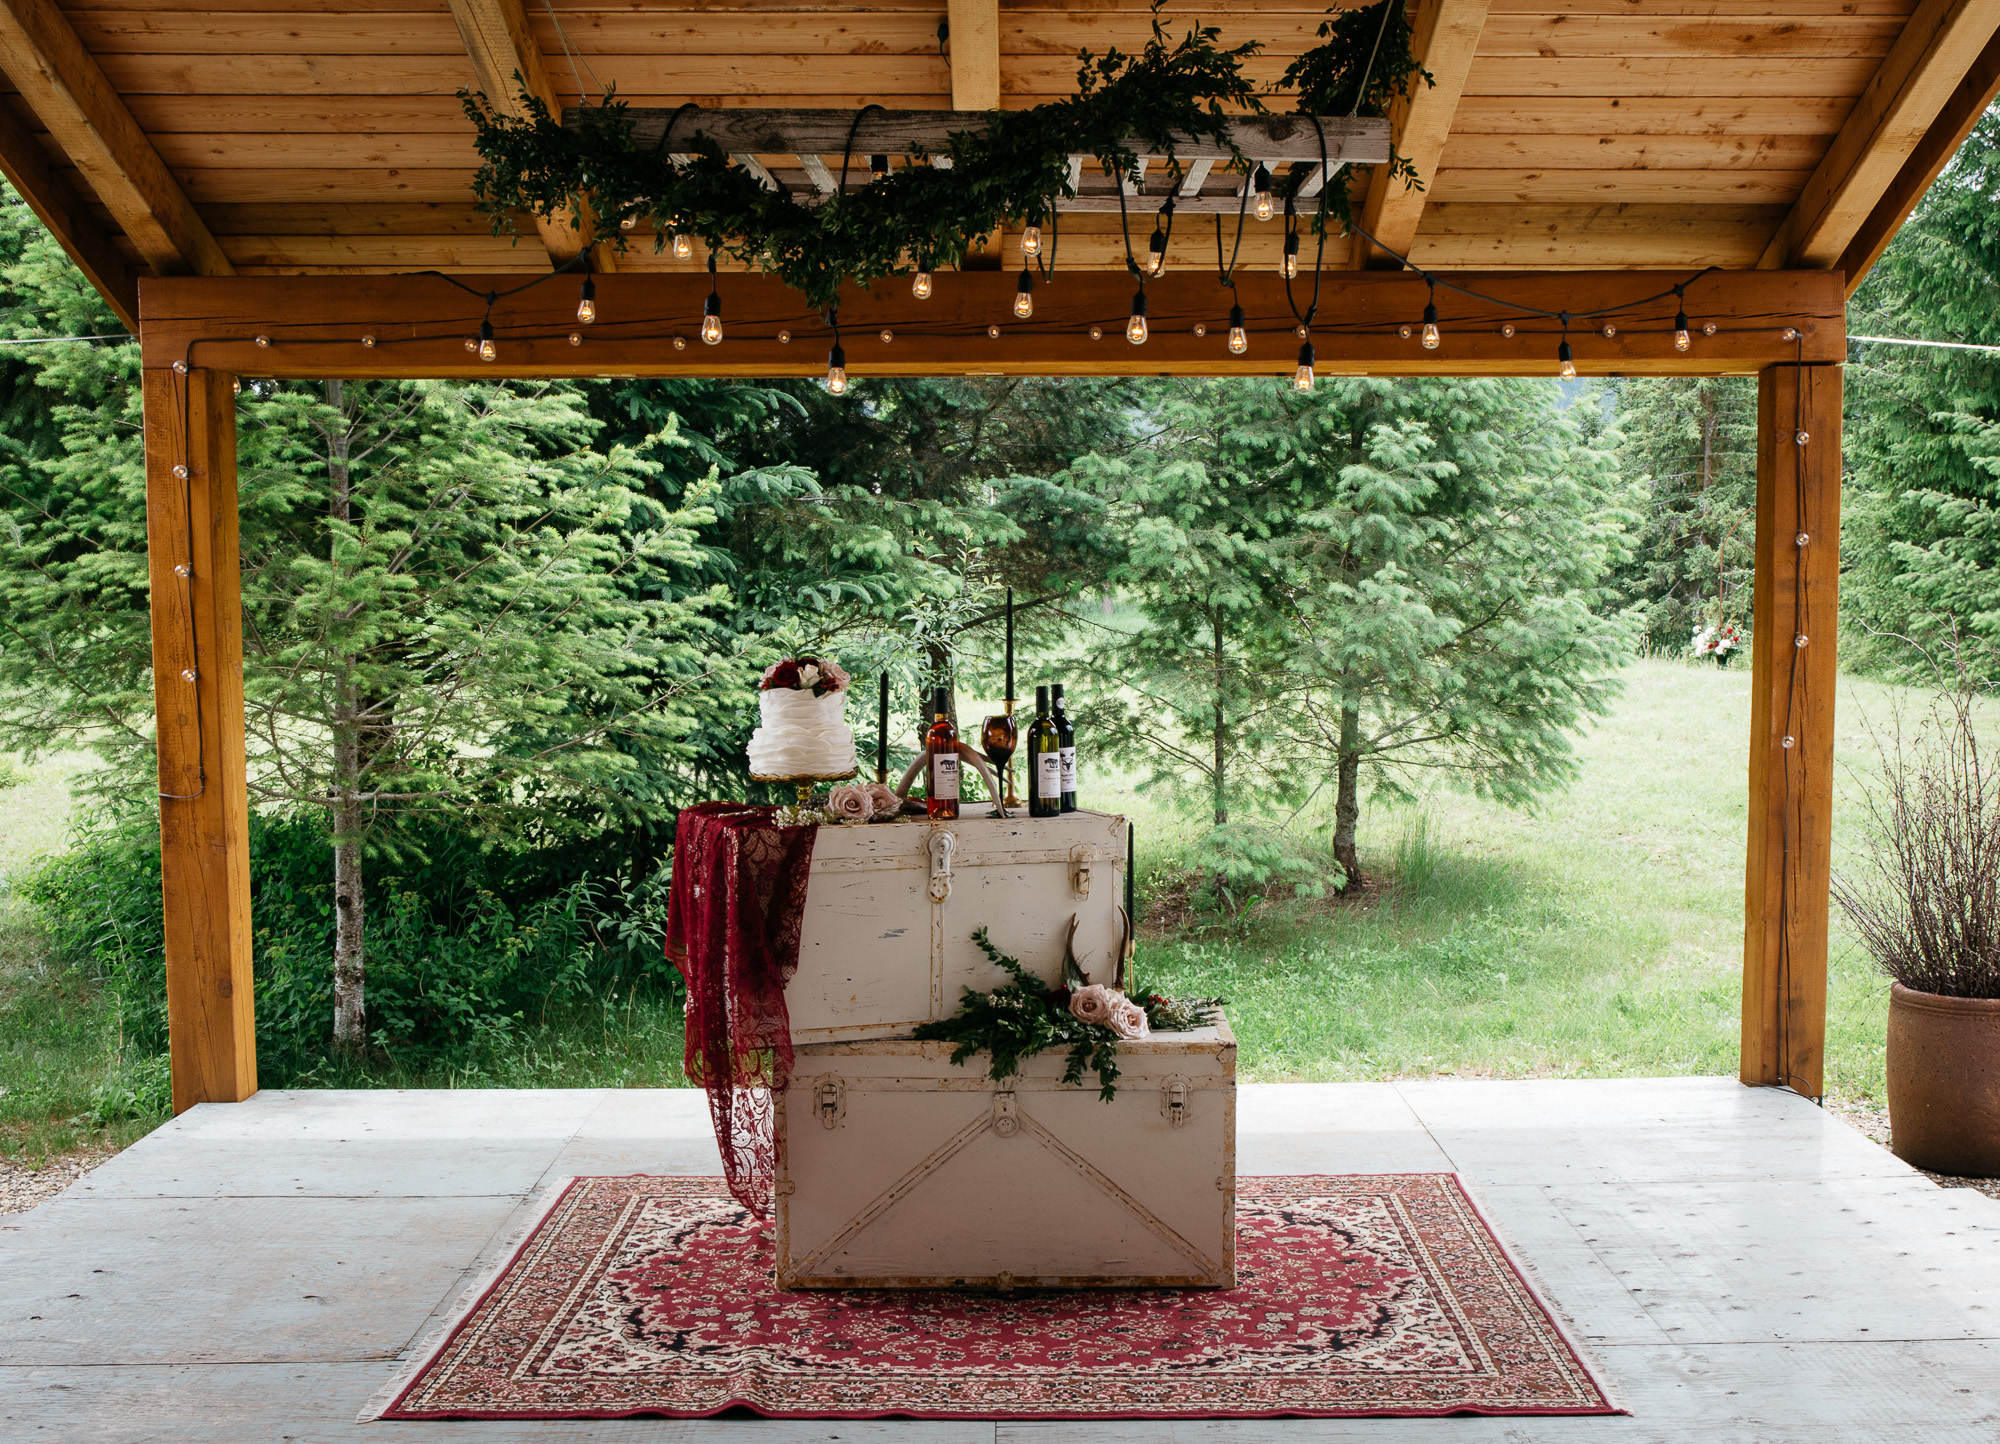 dark and moody with rustic wedding elyse anna photography